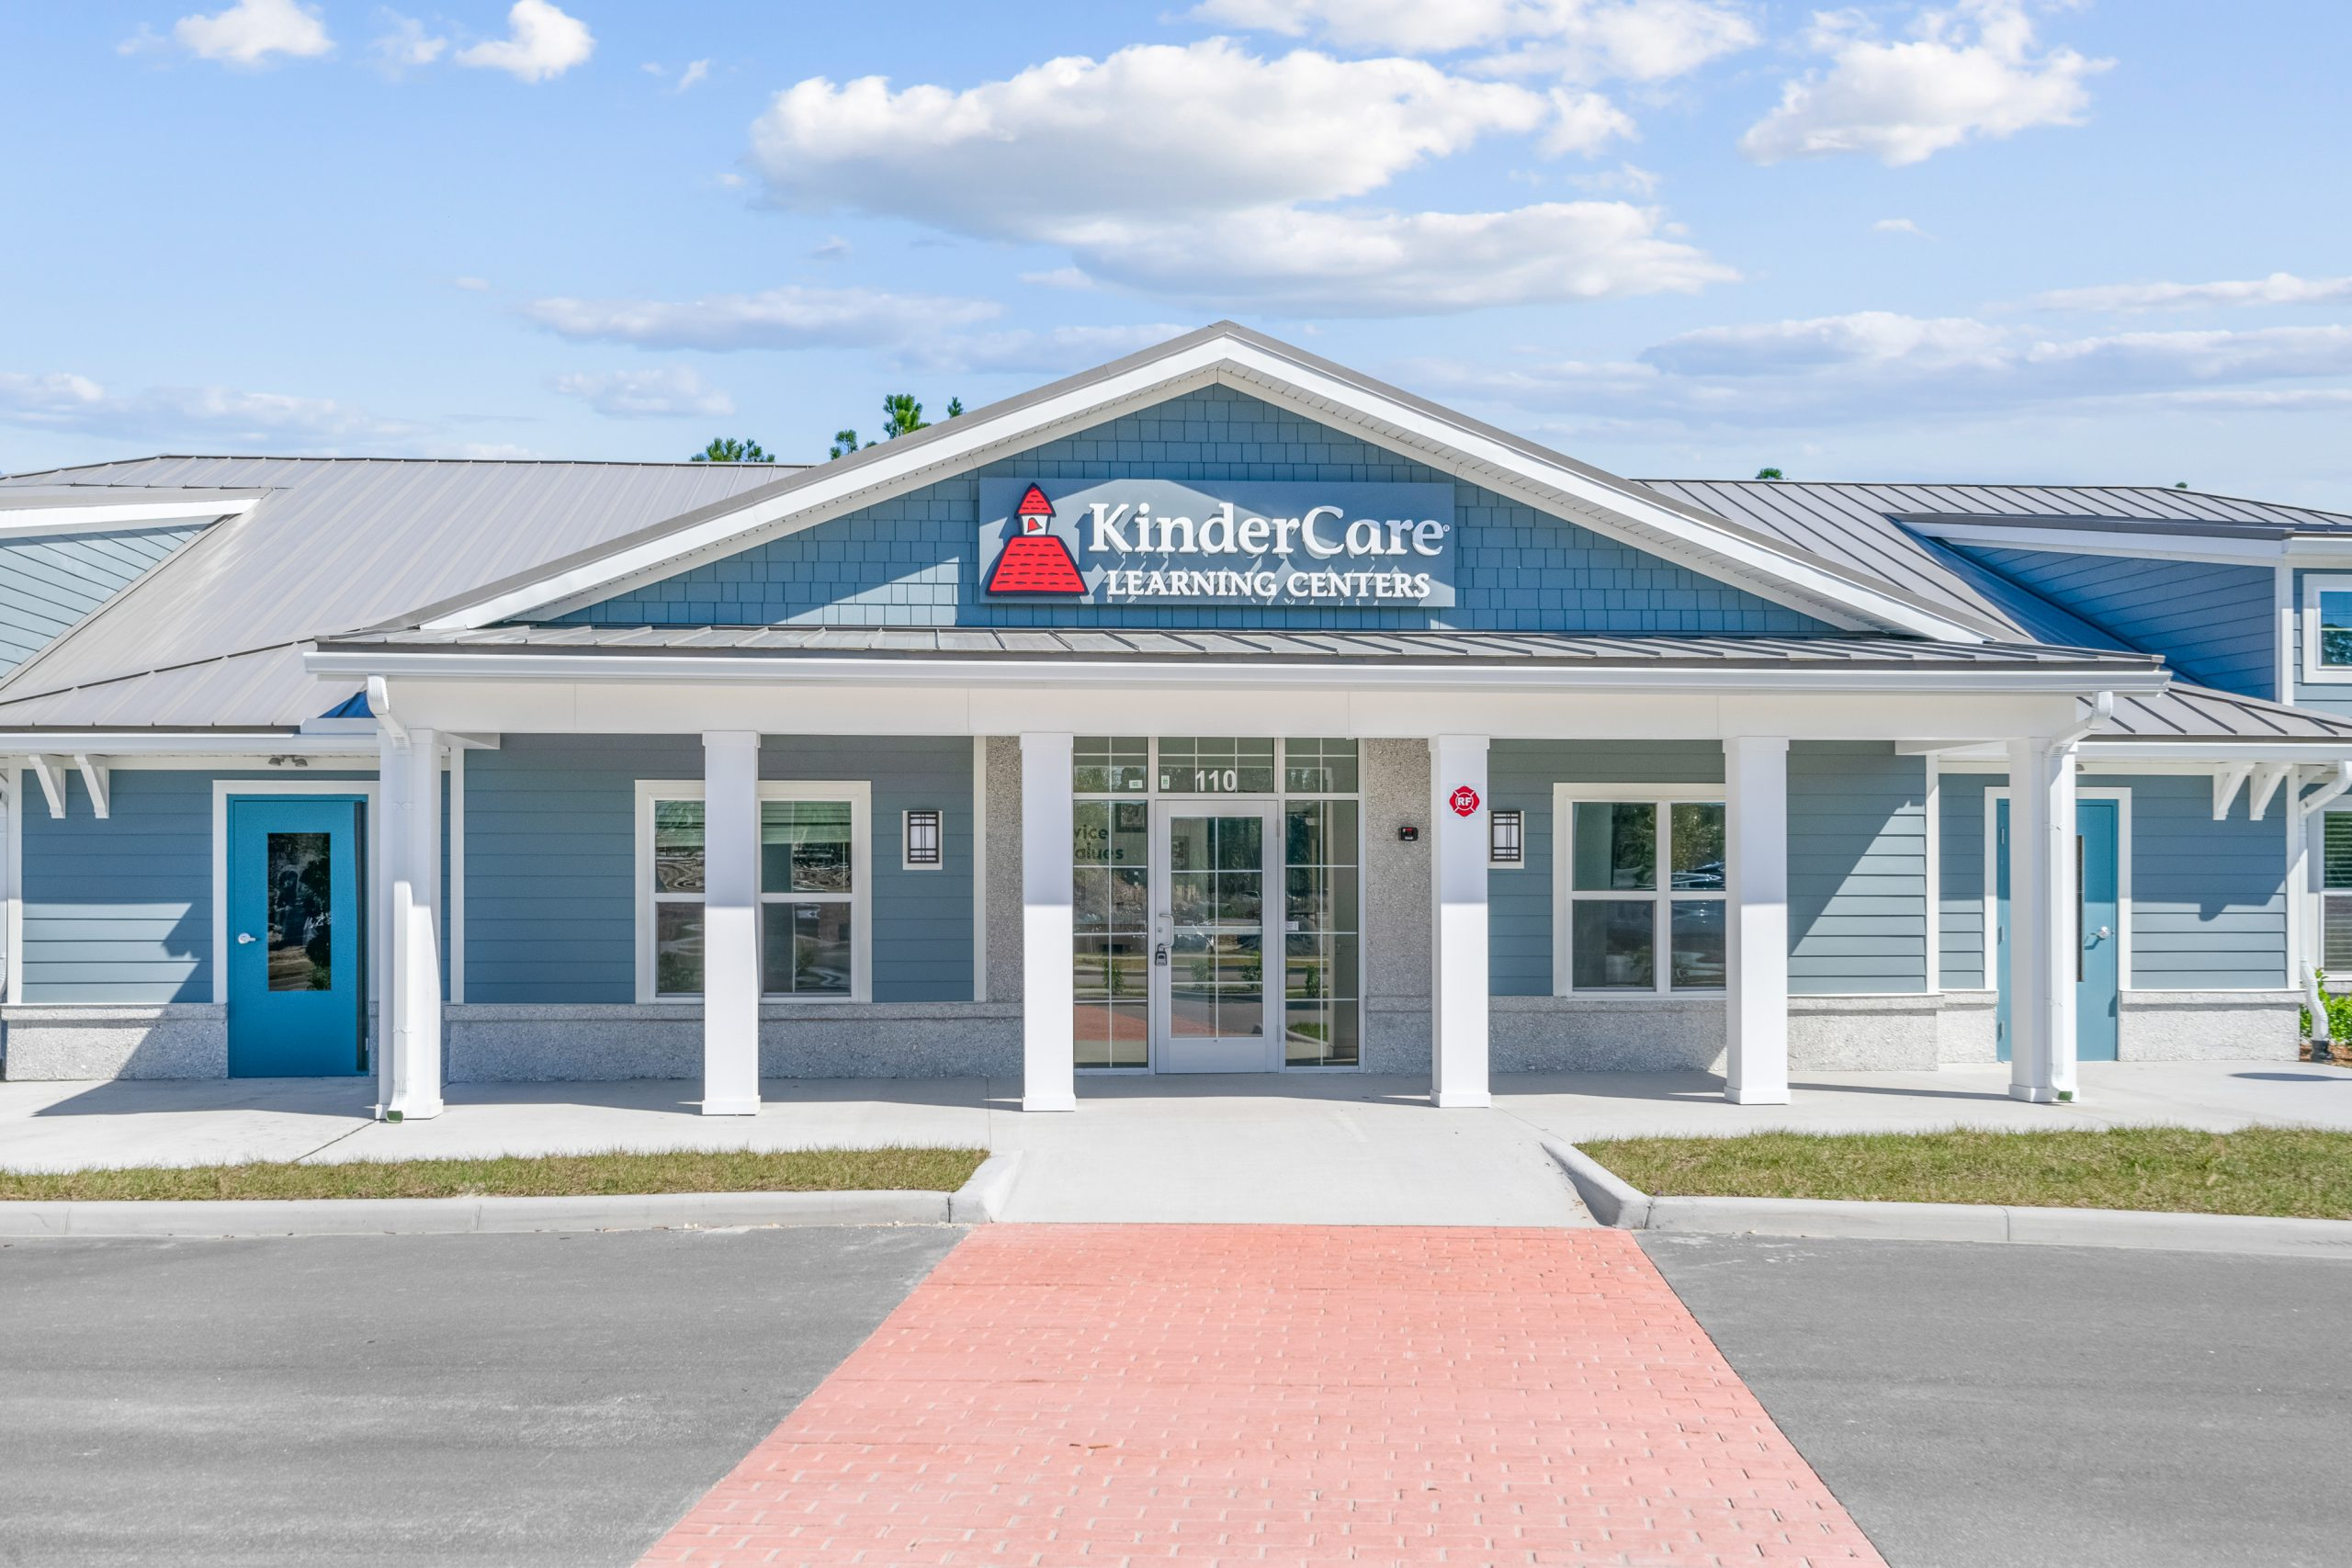 KinderCare is Coming to Yulee, Florida